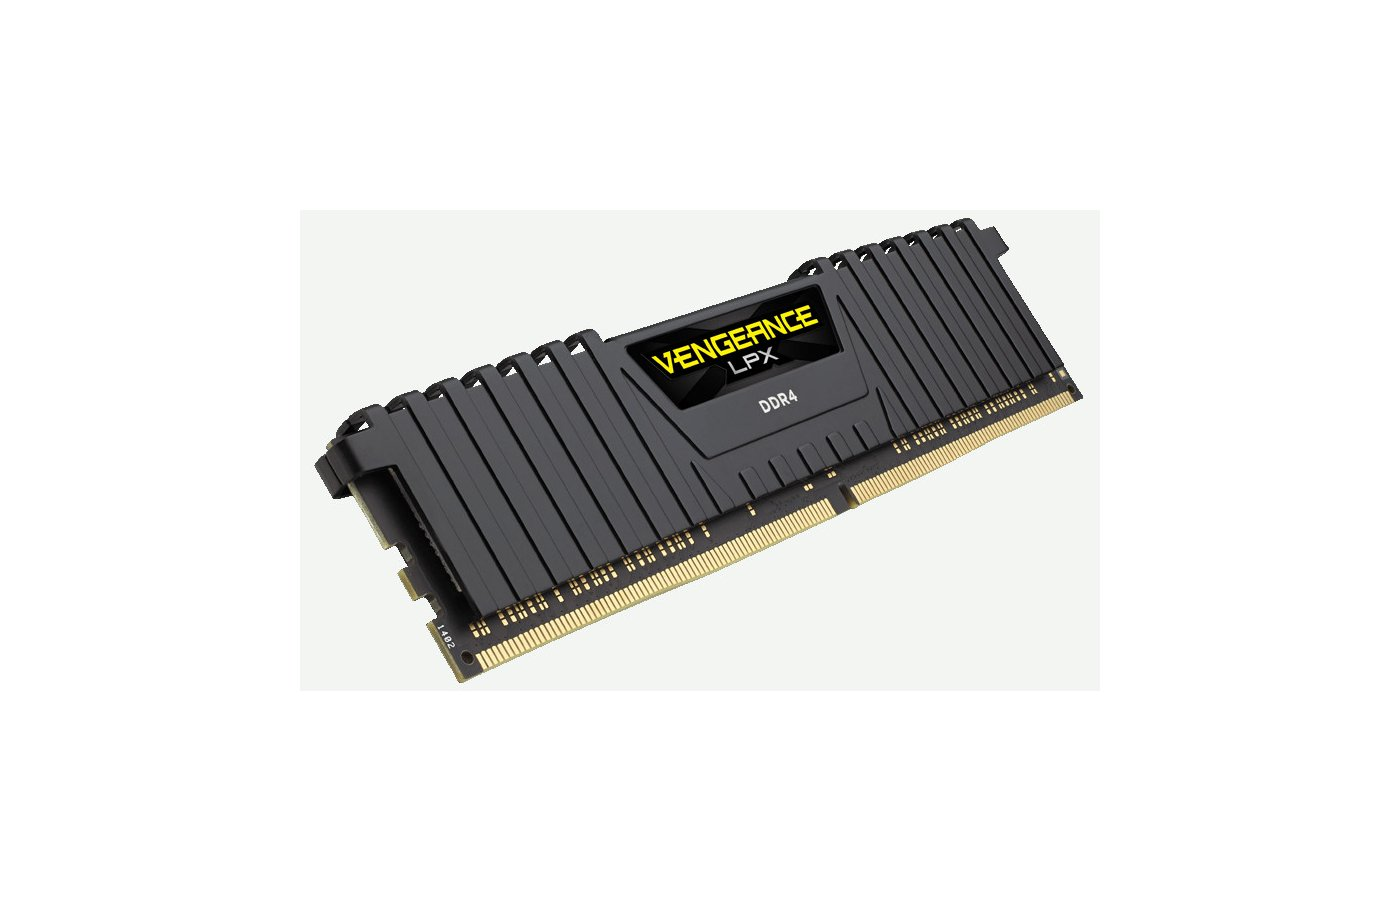 Оперативная память Corsair CMK16GX4M1A2400C14 RTL PC4-19200 DDR4 16Gb 2400MHz CL14 DIMM